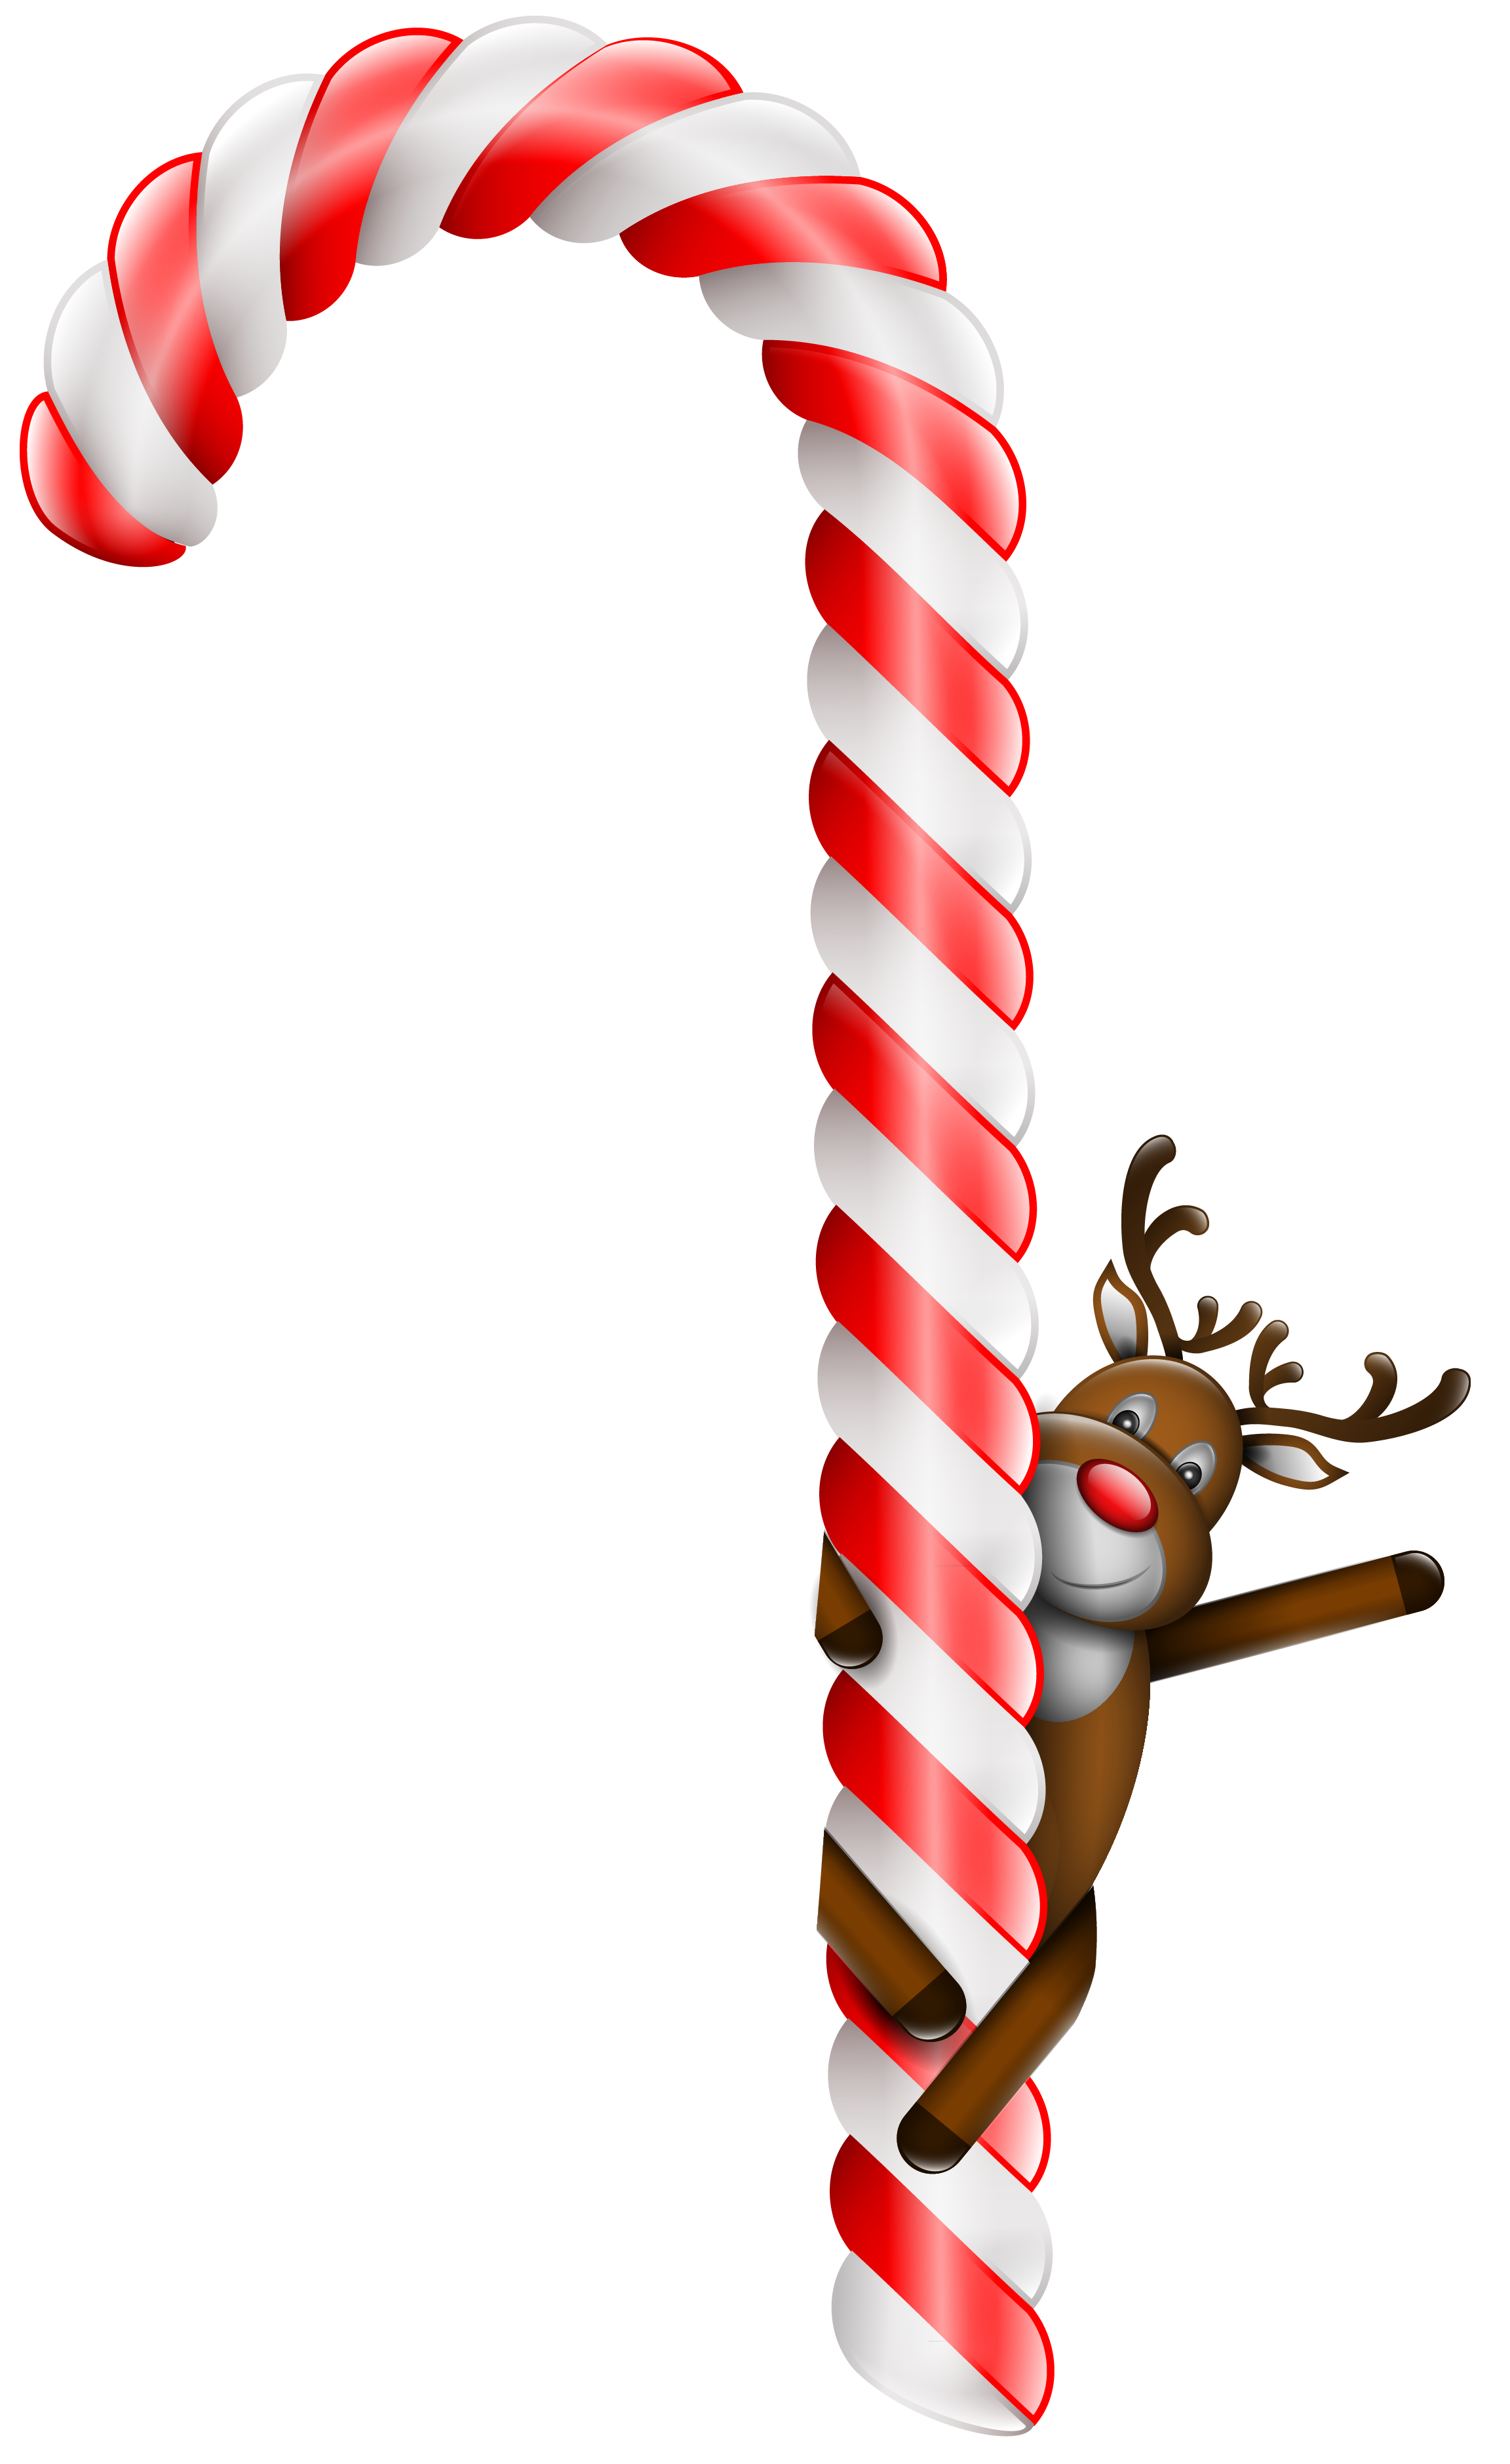 Skeleton hand holding candy cane clipart jpg Free Candy Cane Picture, Download Free Clip Art, Free Clip ... jpg